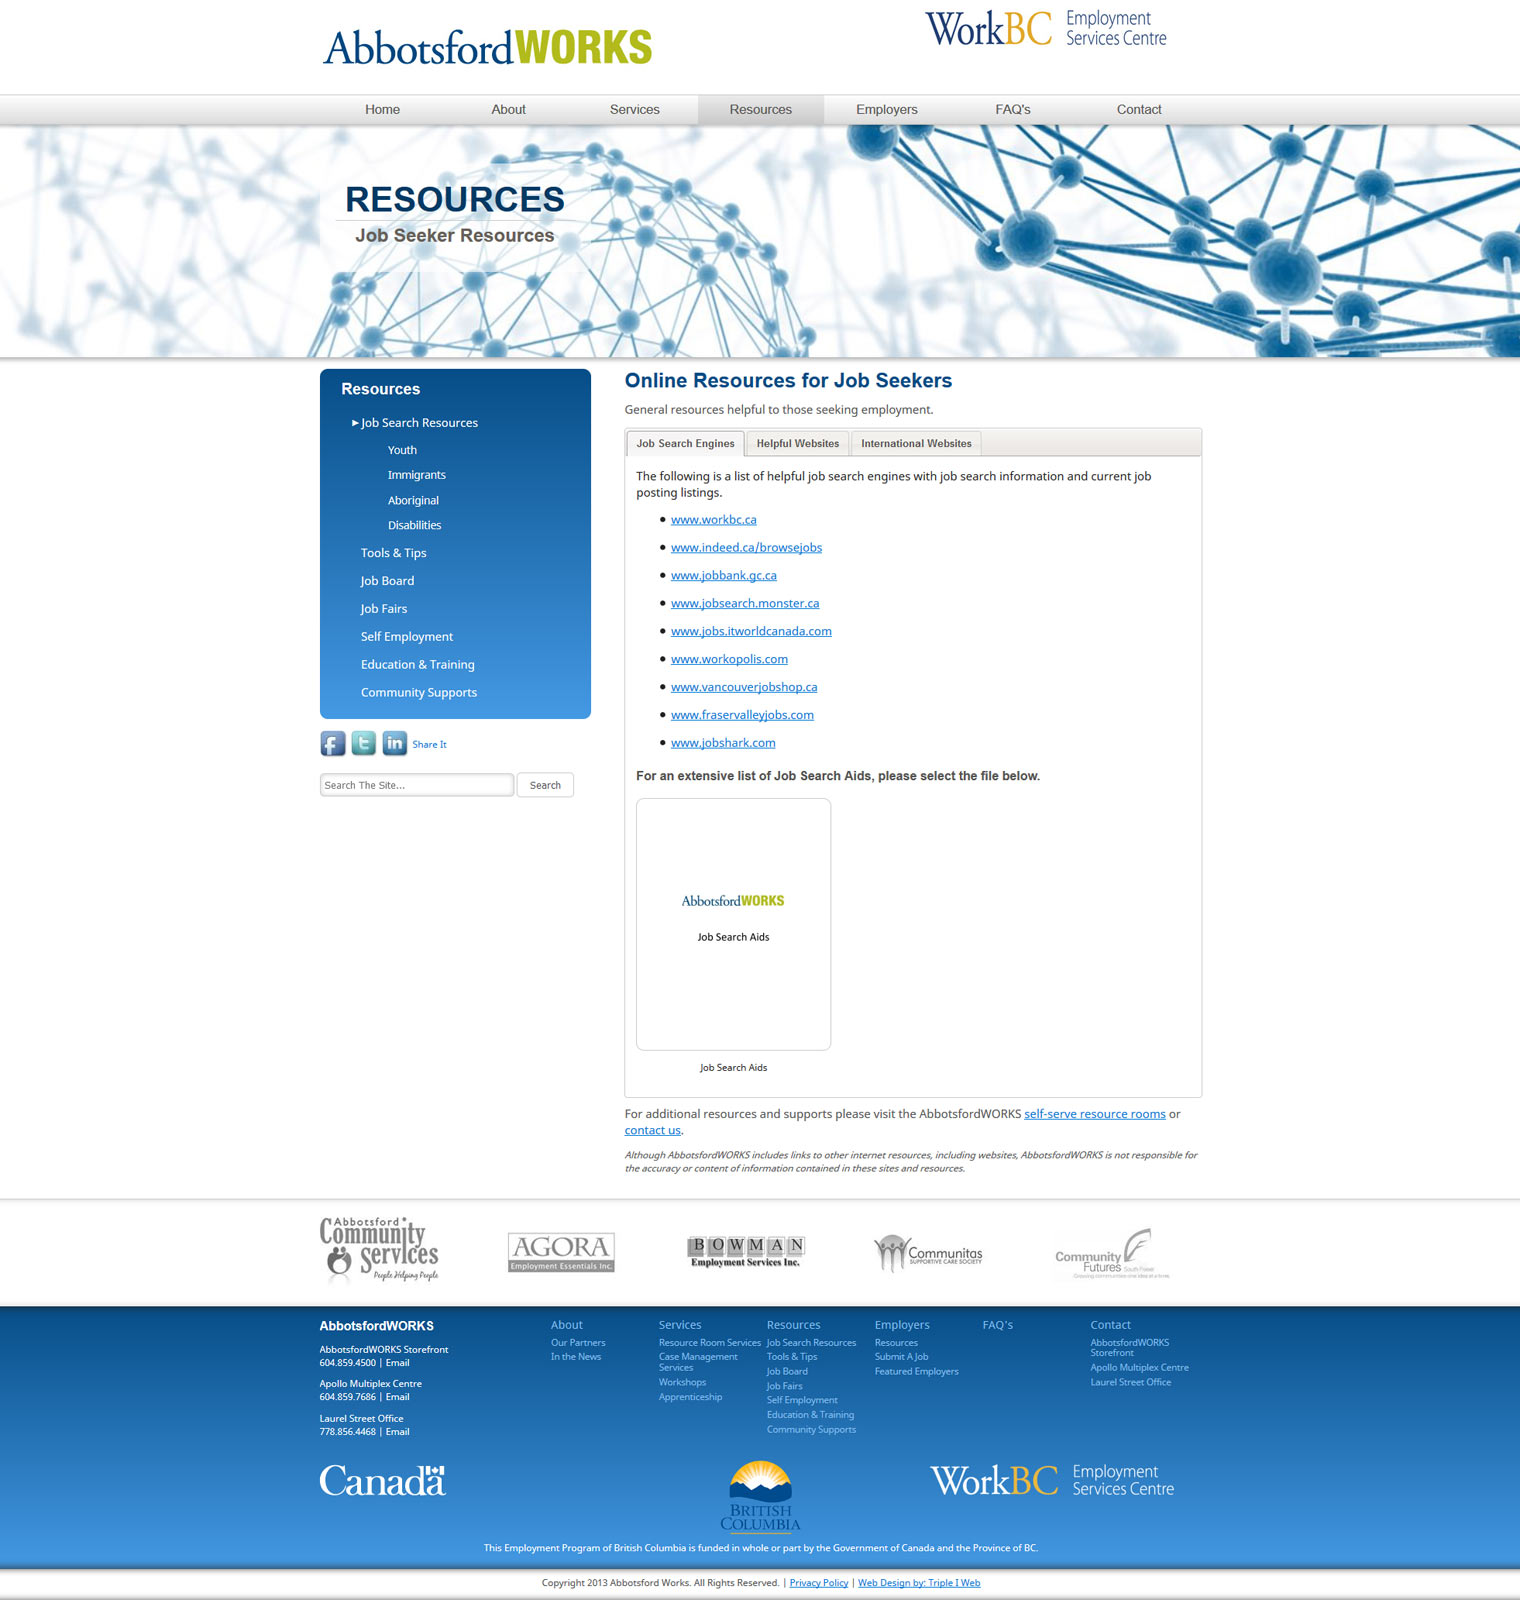 triple i web solutions abbotsfordworks fireshot screen capture 210 job search